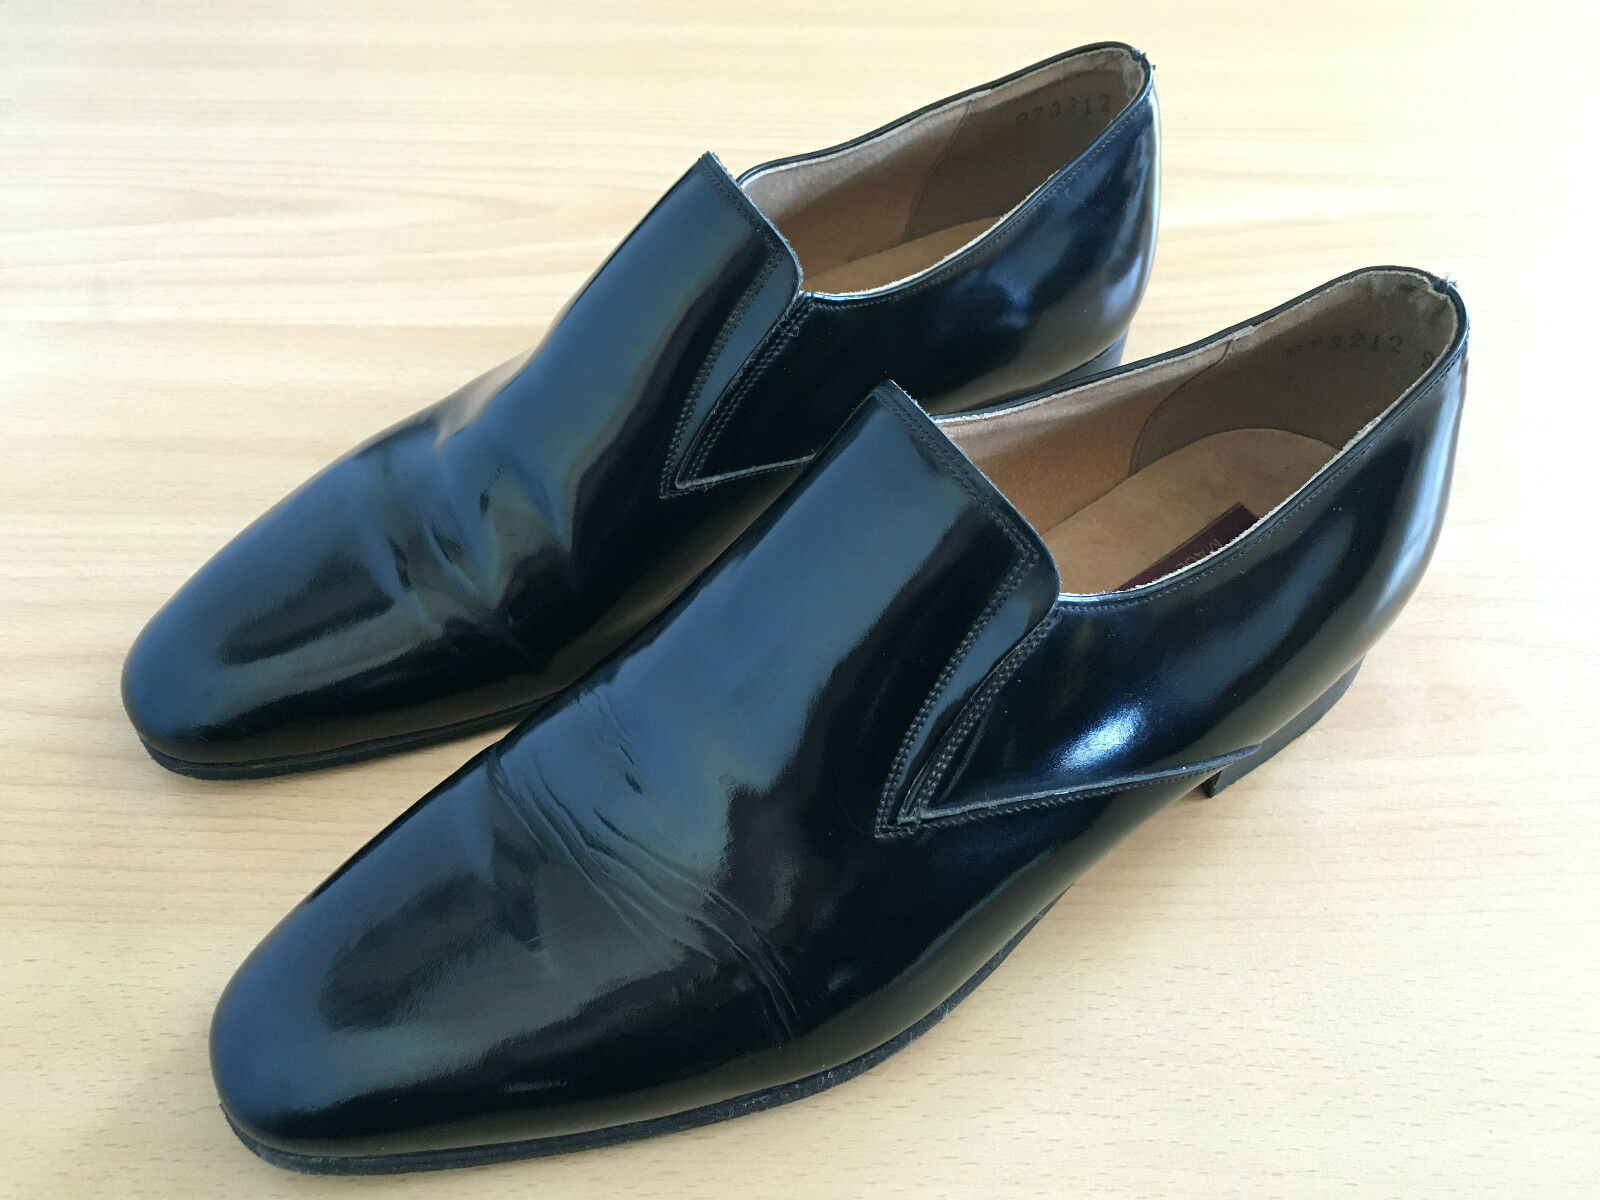 Mocassins Mocassins Mocassins Cuir Vernis - Patent Loafers Slip-on 9.5US - Made in France - Rare 4dbc32